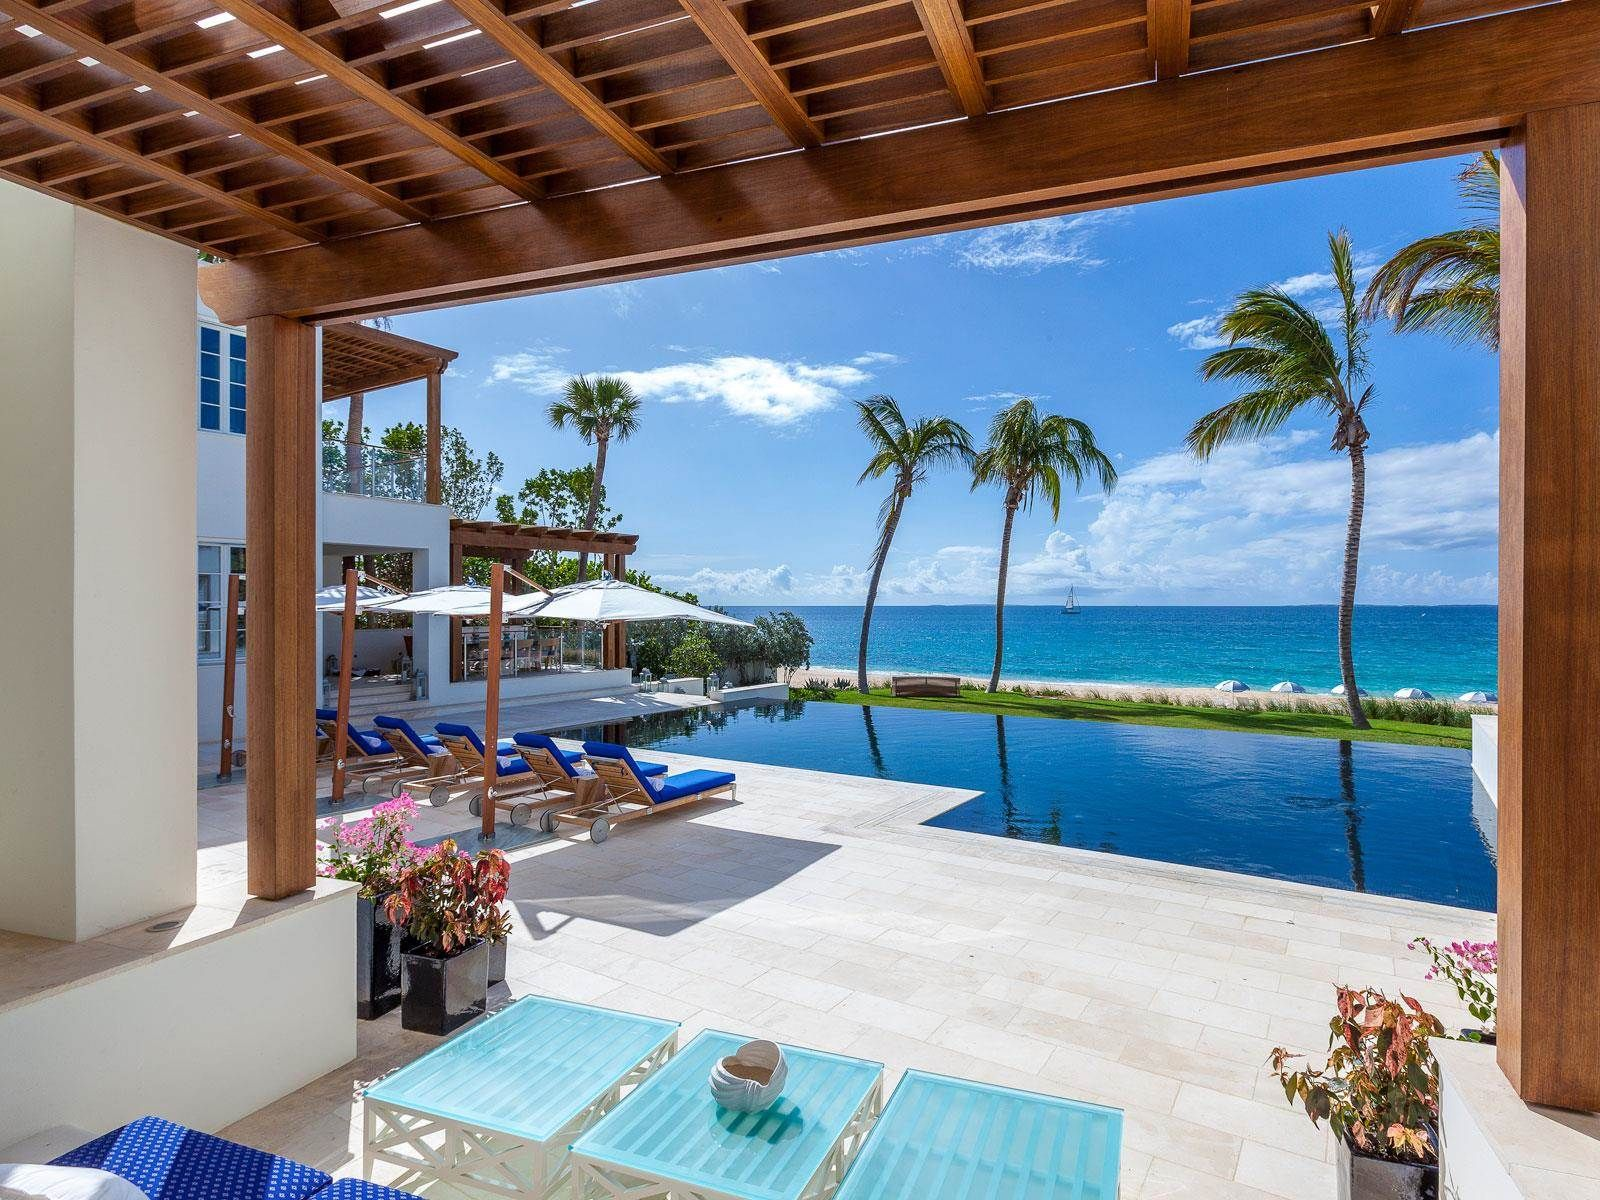 Cerulean villa a luxury home for sale in west end cities in anguilla christies international real estate